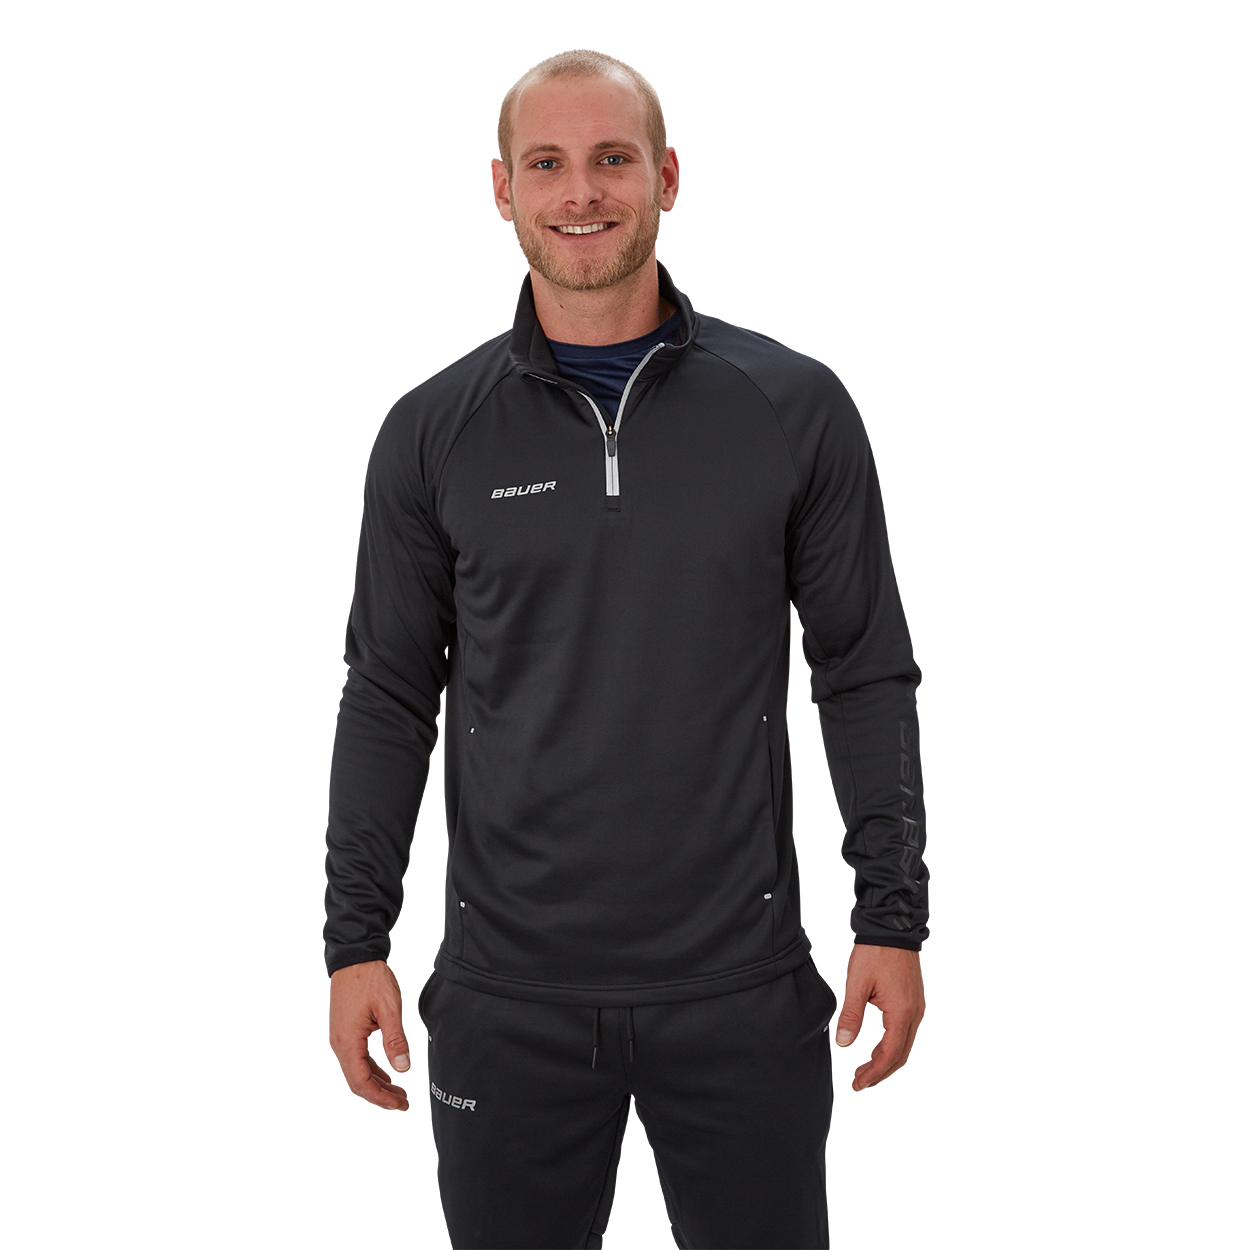 Bauer Vapor Fleece Quarter Zip,Черный,Размер M